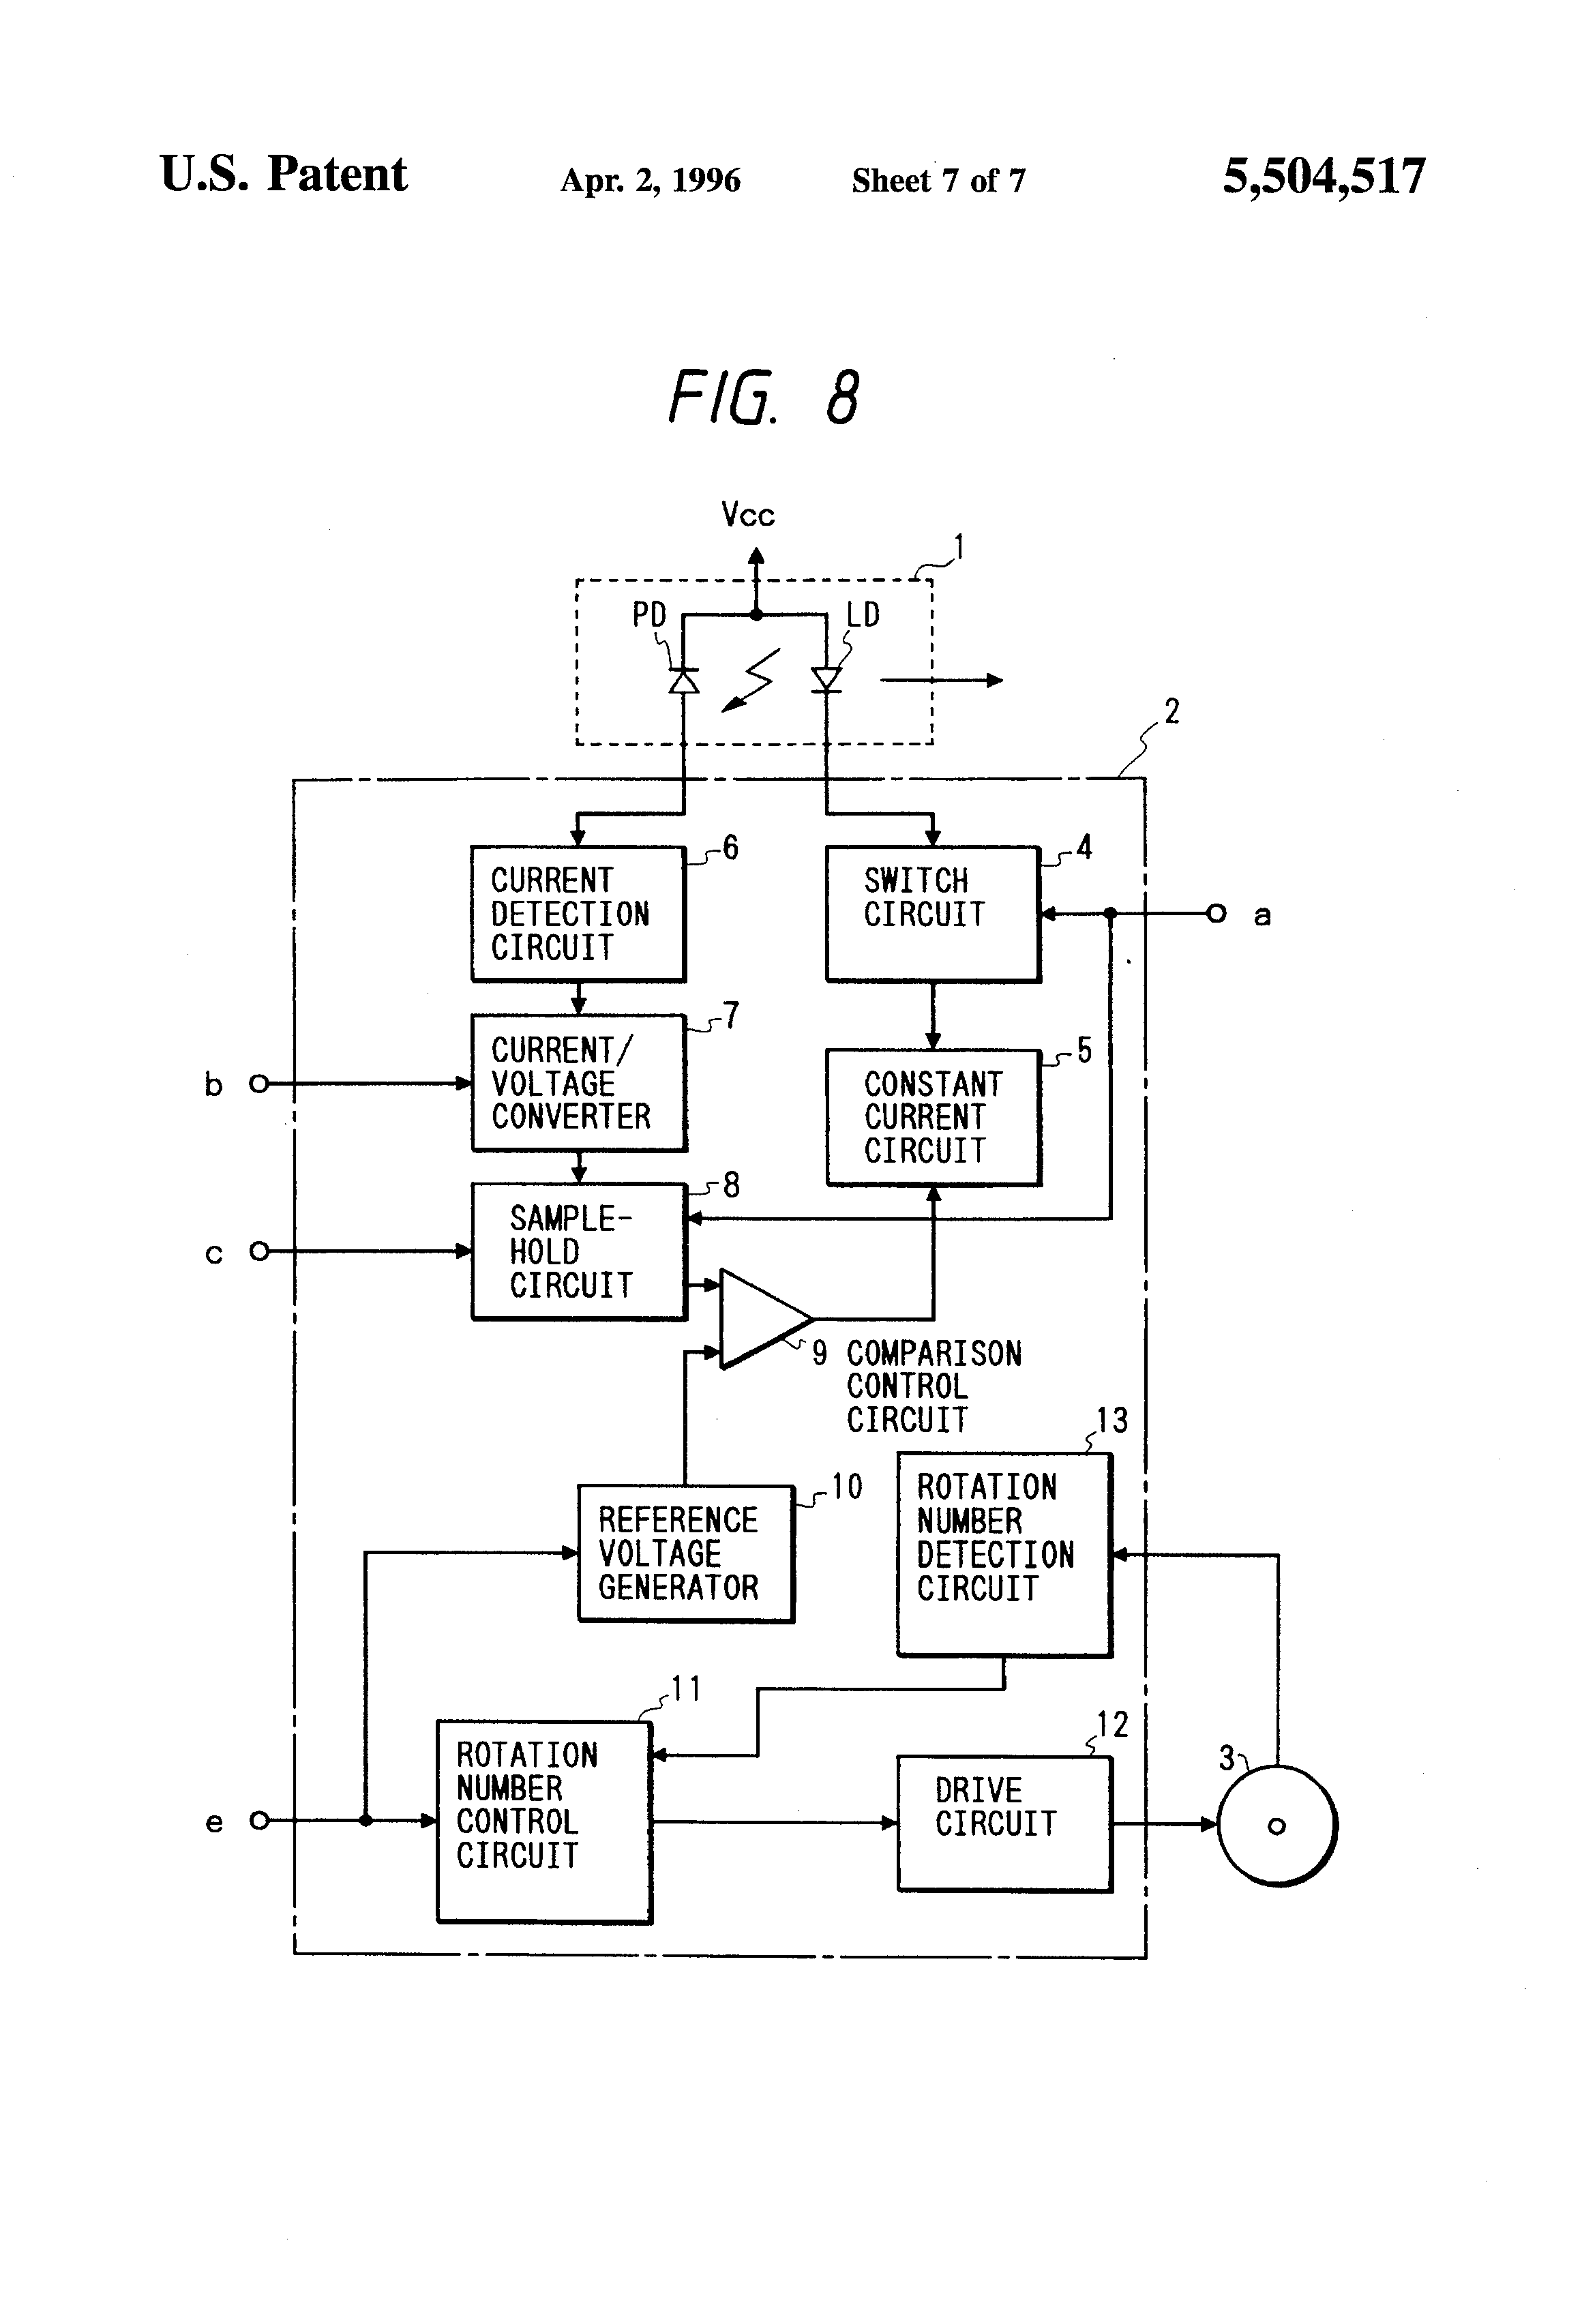 Patent Us5504517 Laser Scanner Control Circuit Which Is Used In Constantcurrent Generator Drawing